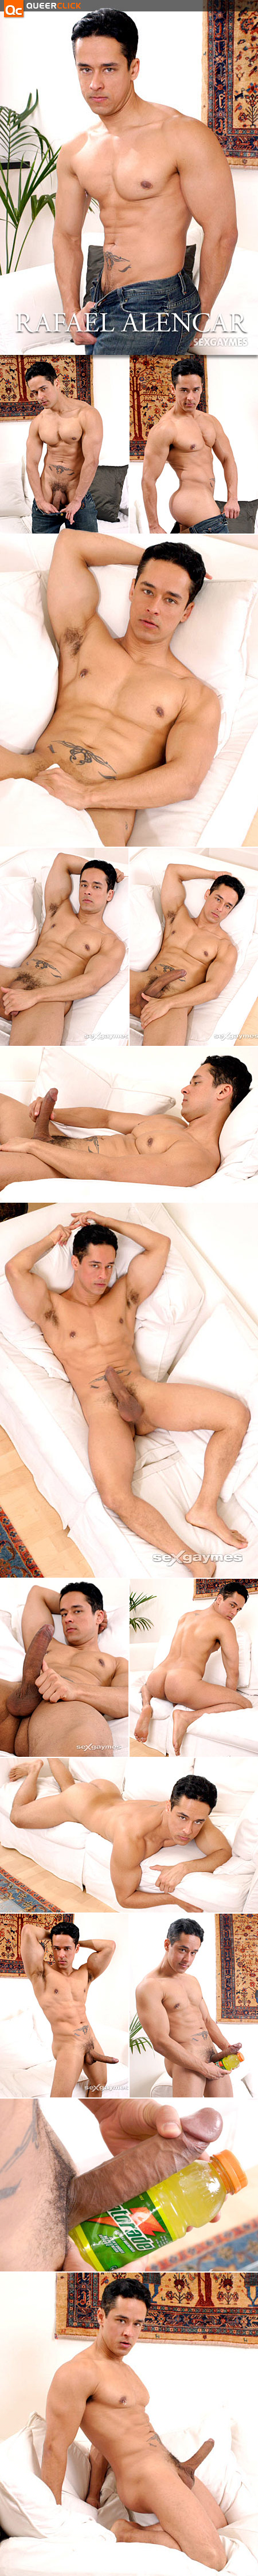 Rafael Alencar at SexGaymes.com